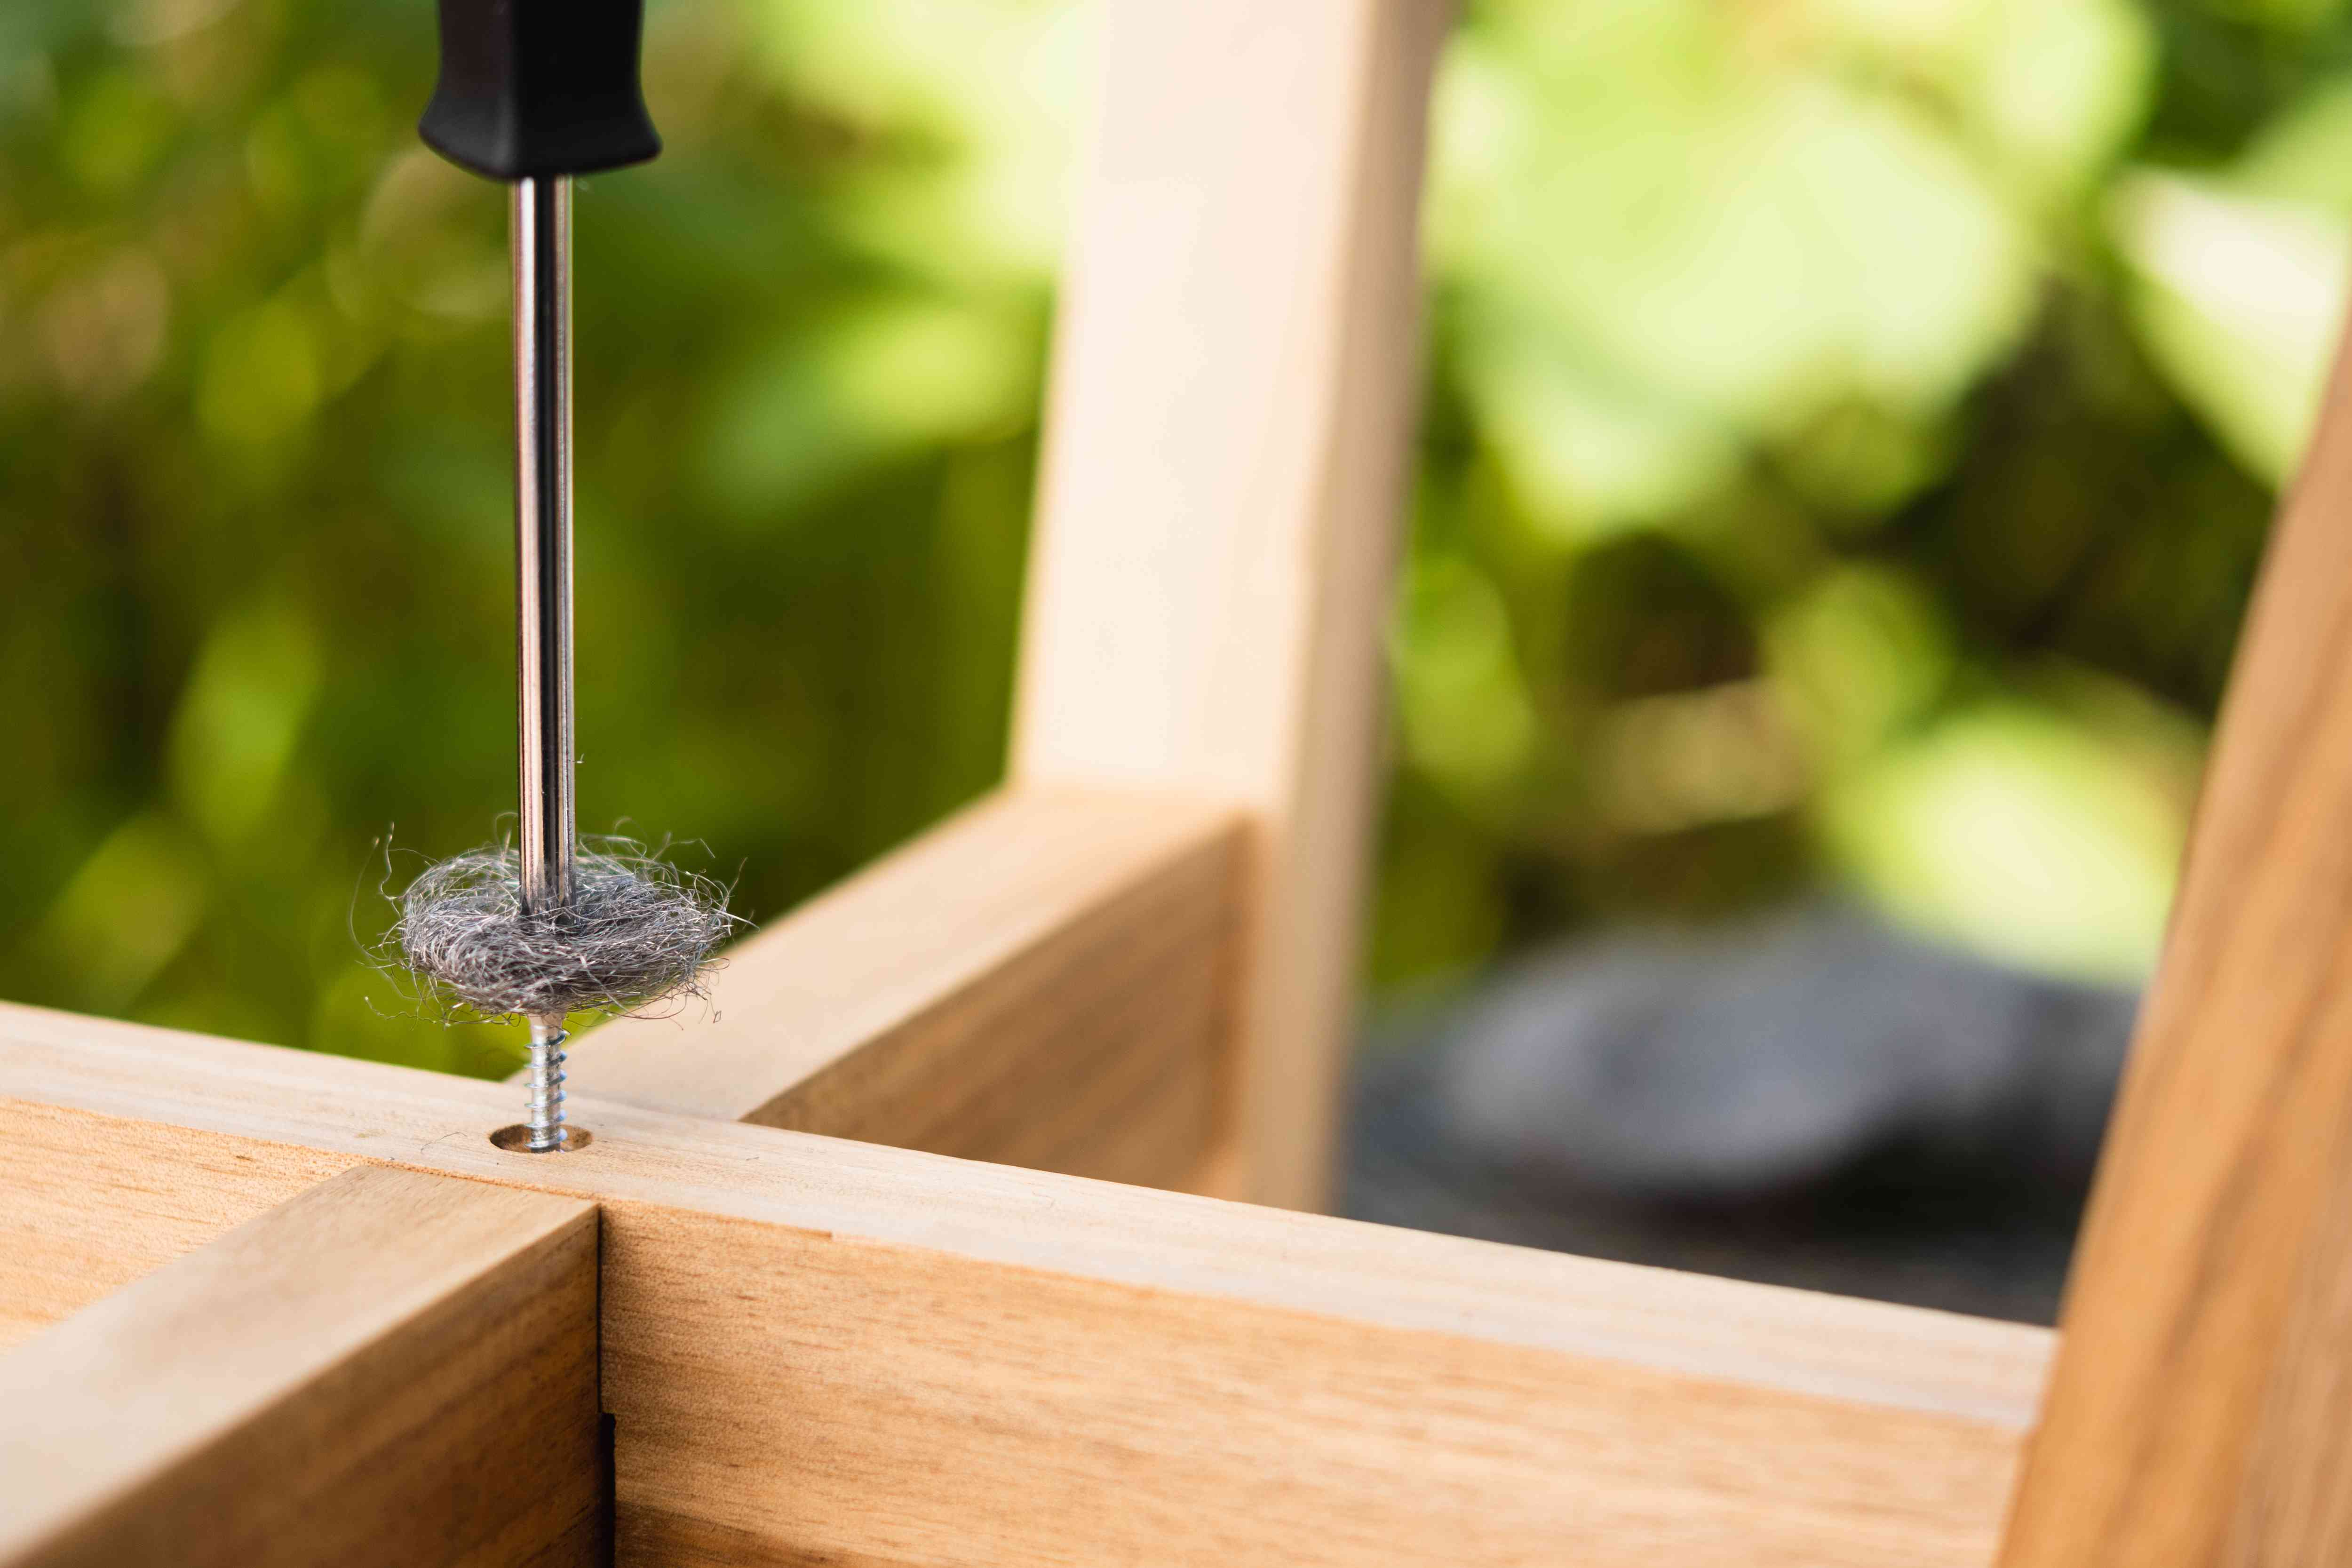 Steel wool inserted between stripped screw head and drill bit in wooden fixture